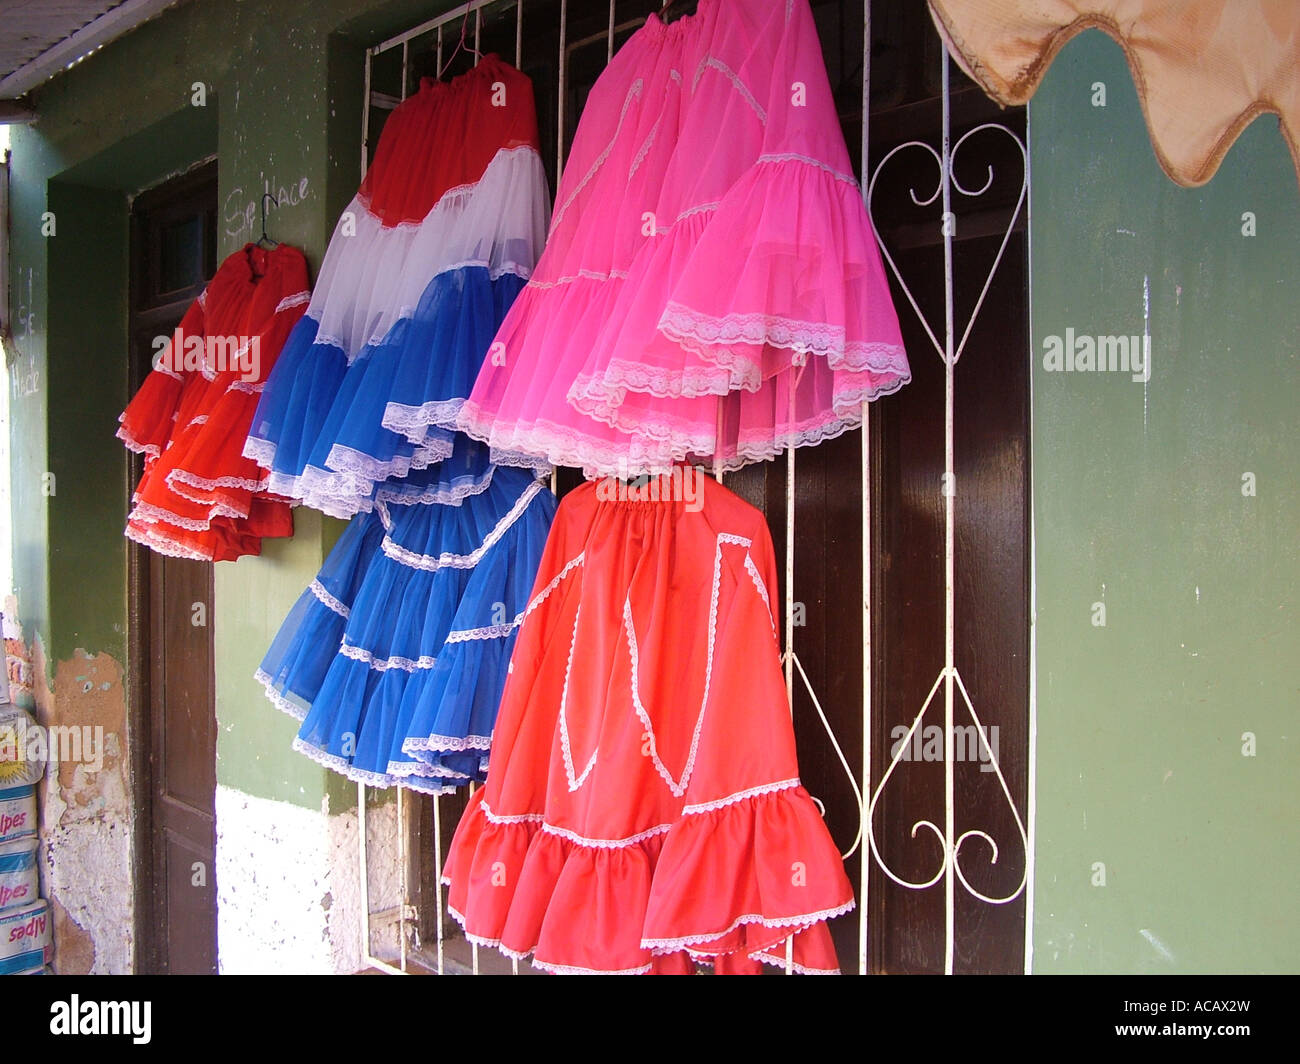 Traditional colorful skirts at a shop, Concepcion, Paraguay - Stock Image